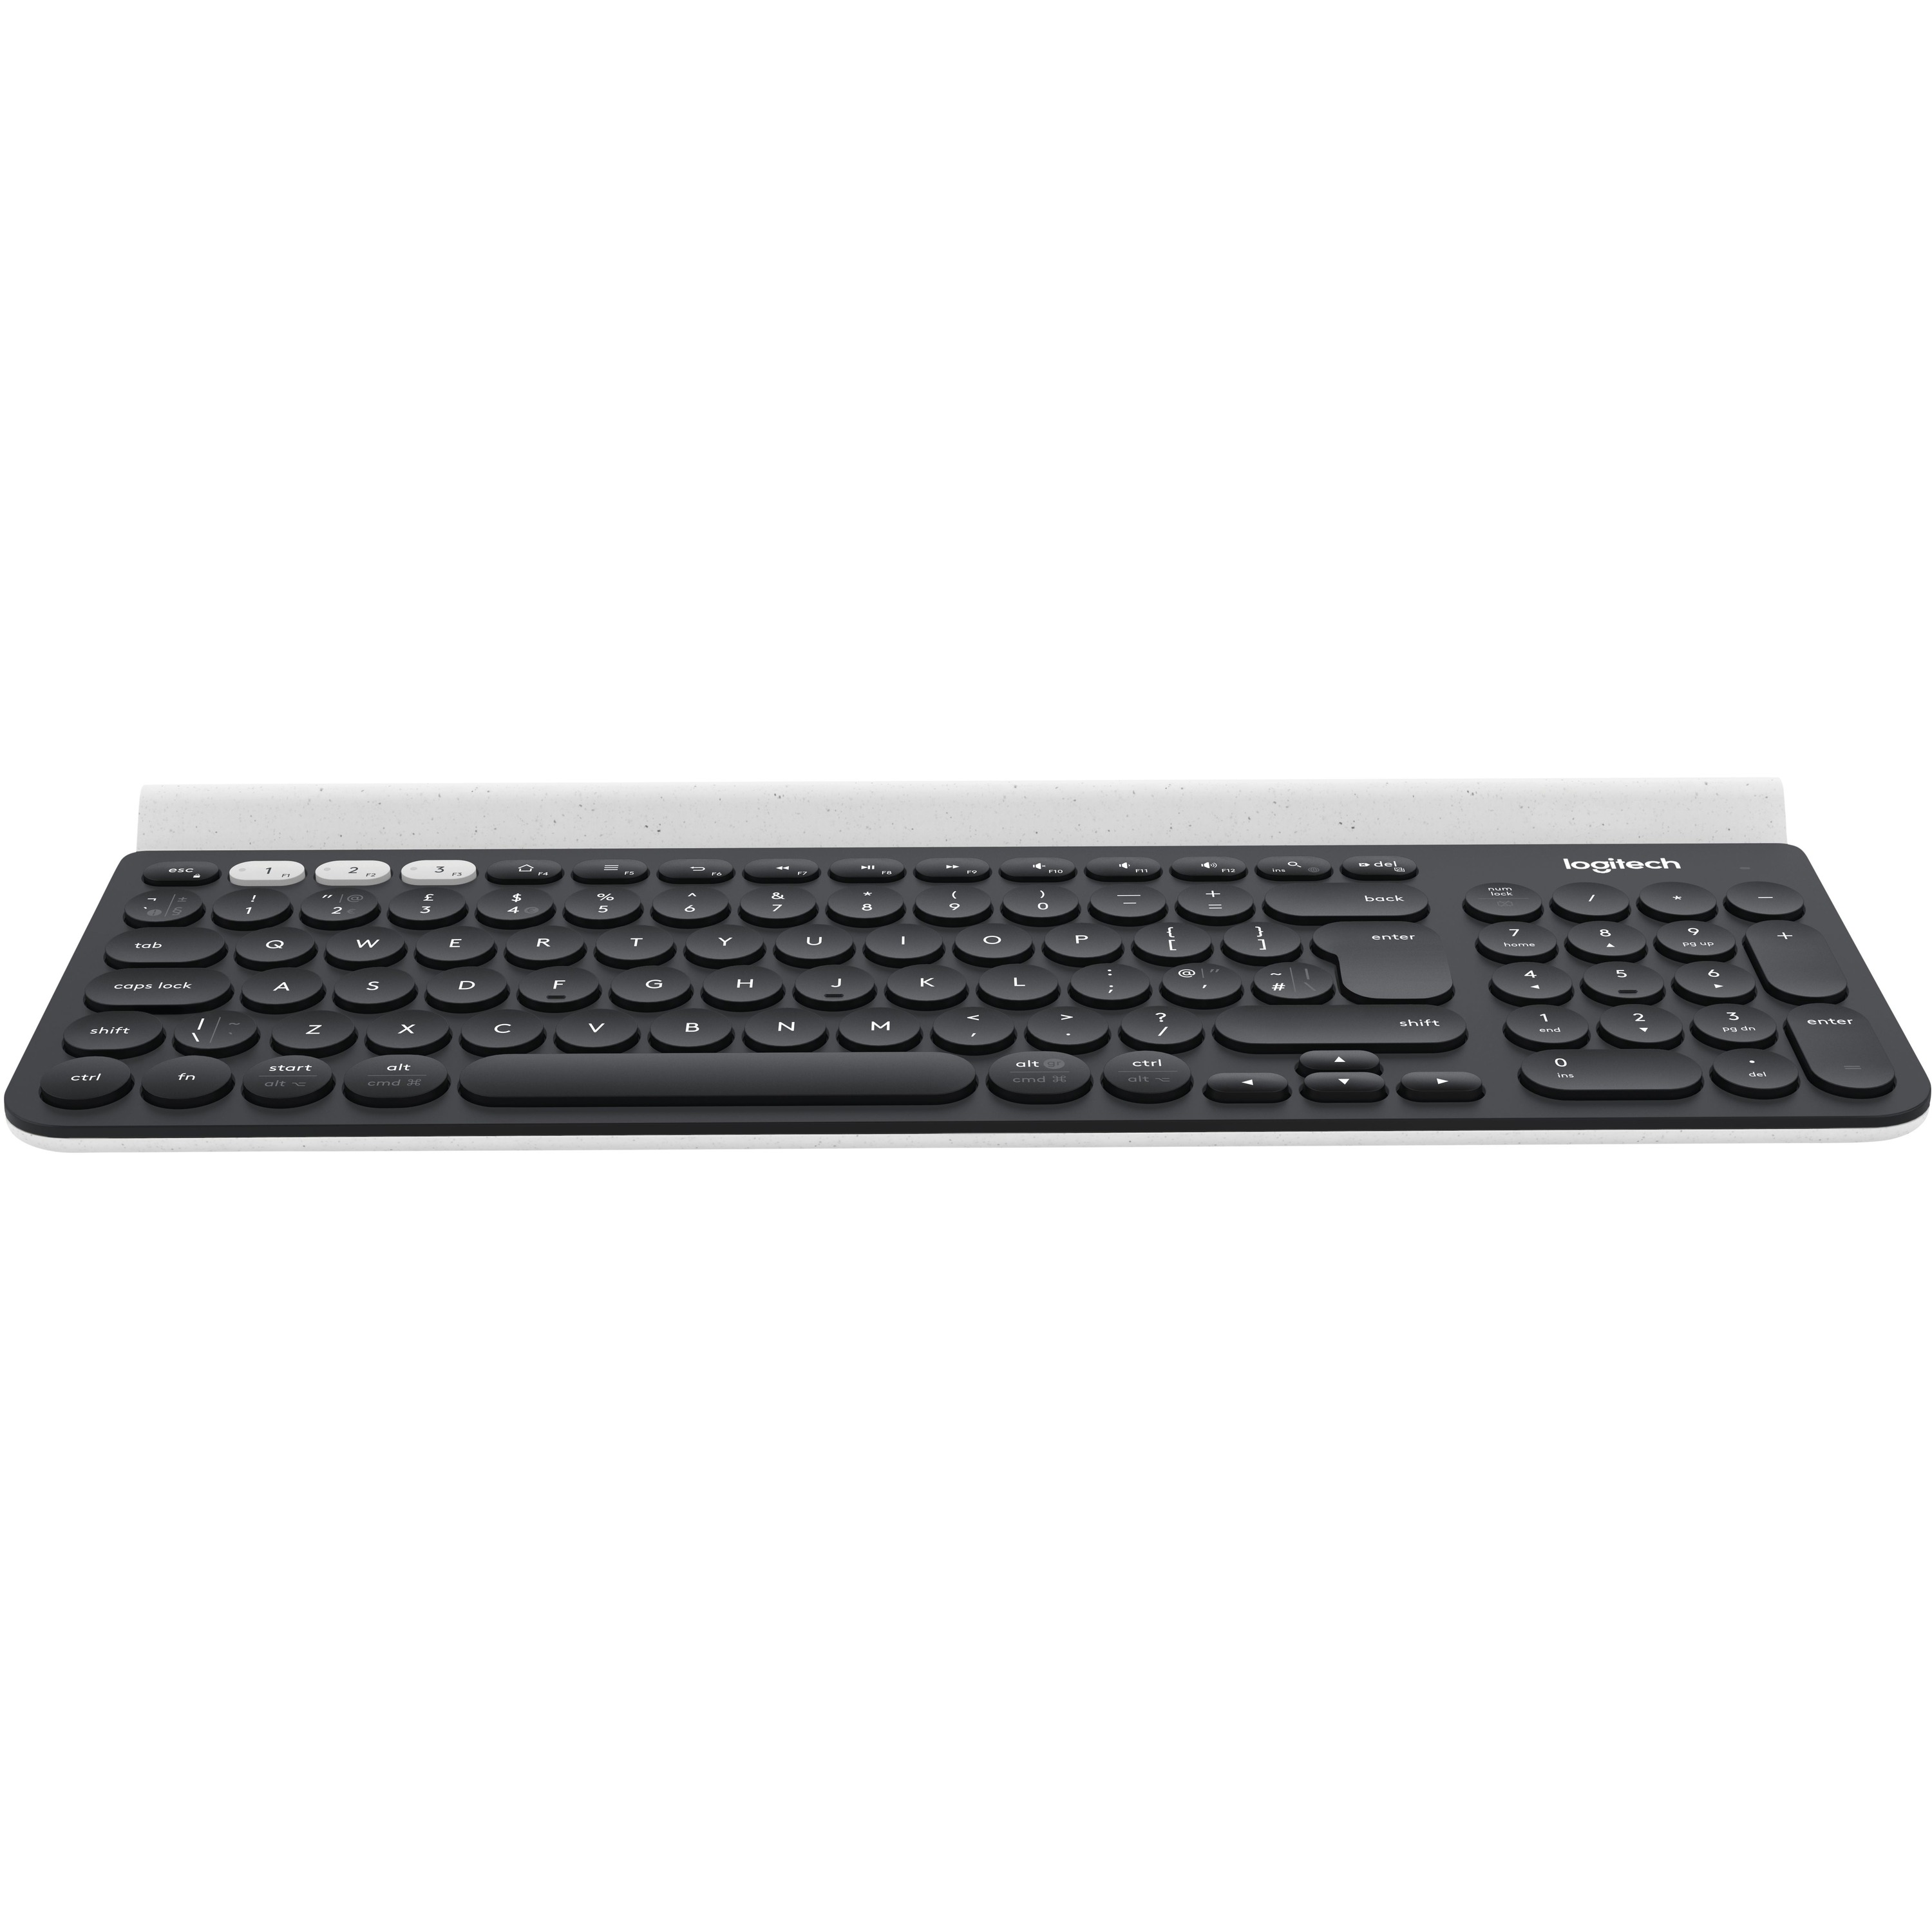 Logitech K780 Keyboard - White, Dark Grey